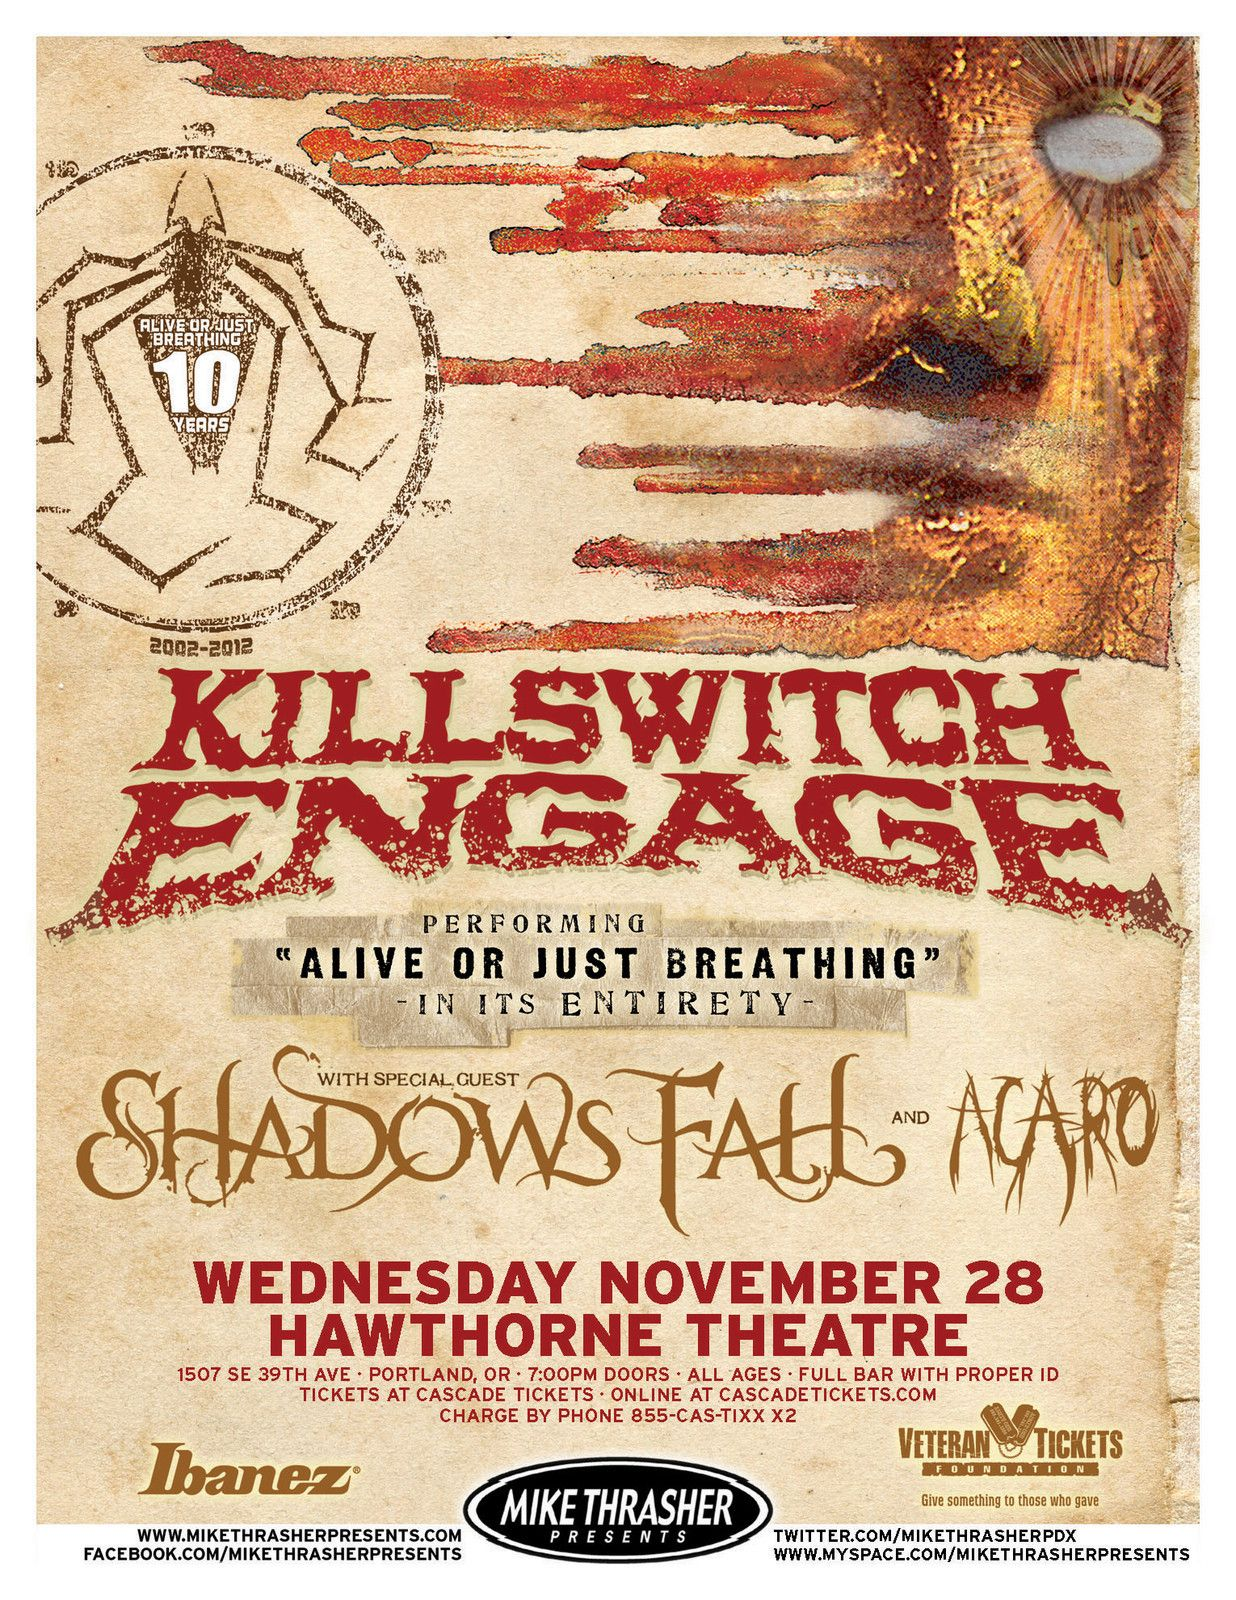 Metal Concert Posters Engage Shadows Fall 2012 Portland